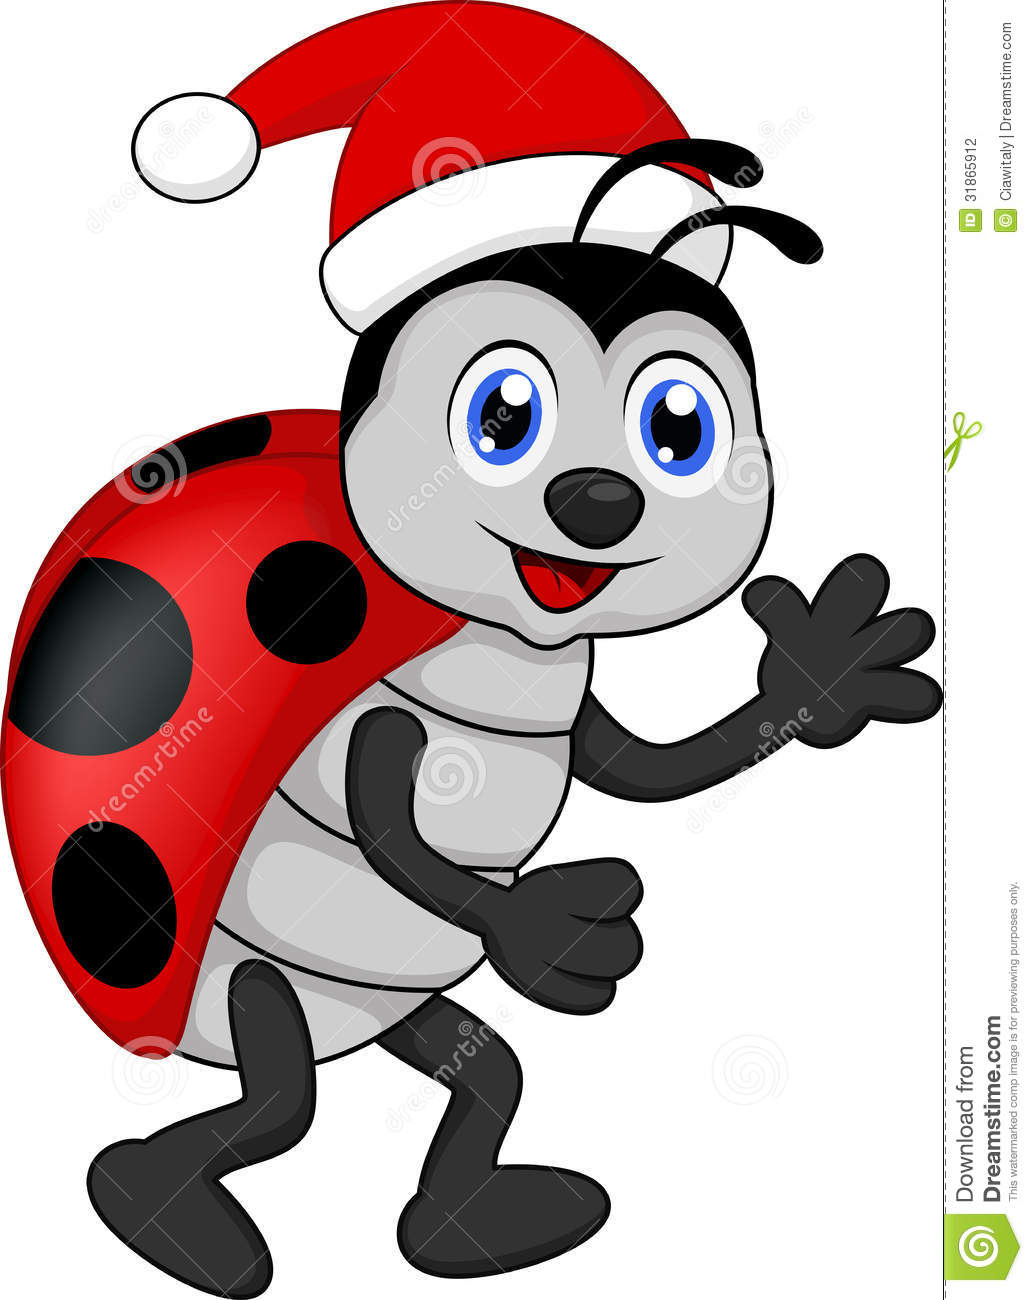 Free Ladybug Clipart at GetDrawings.com   Free for personal use Free ...